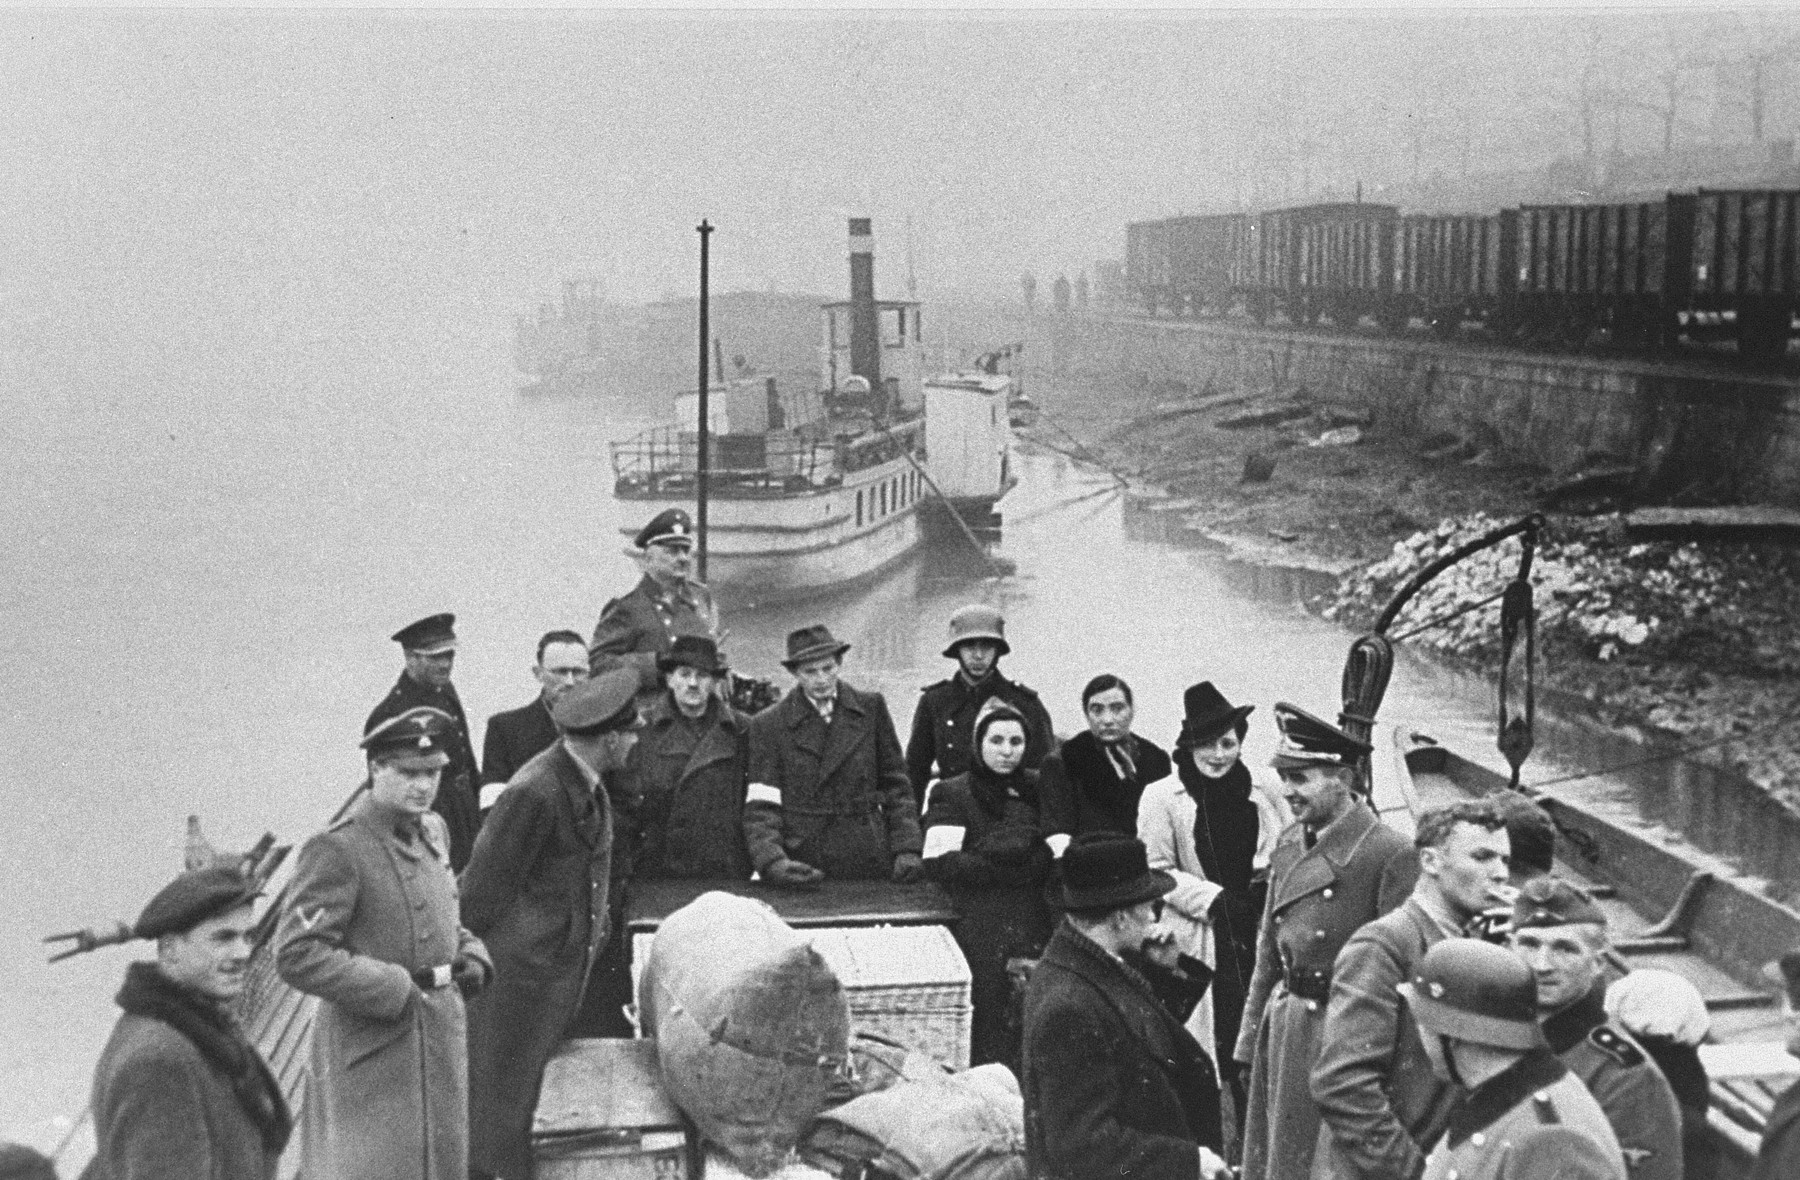 Jews are transported by ferry across the Vistula River for resettlement in the Krakow ghetto.